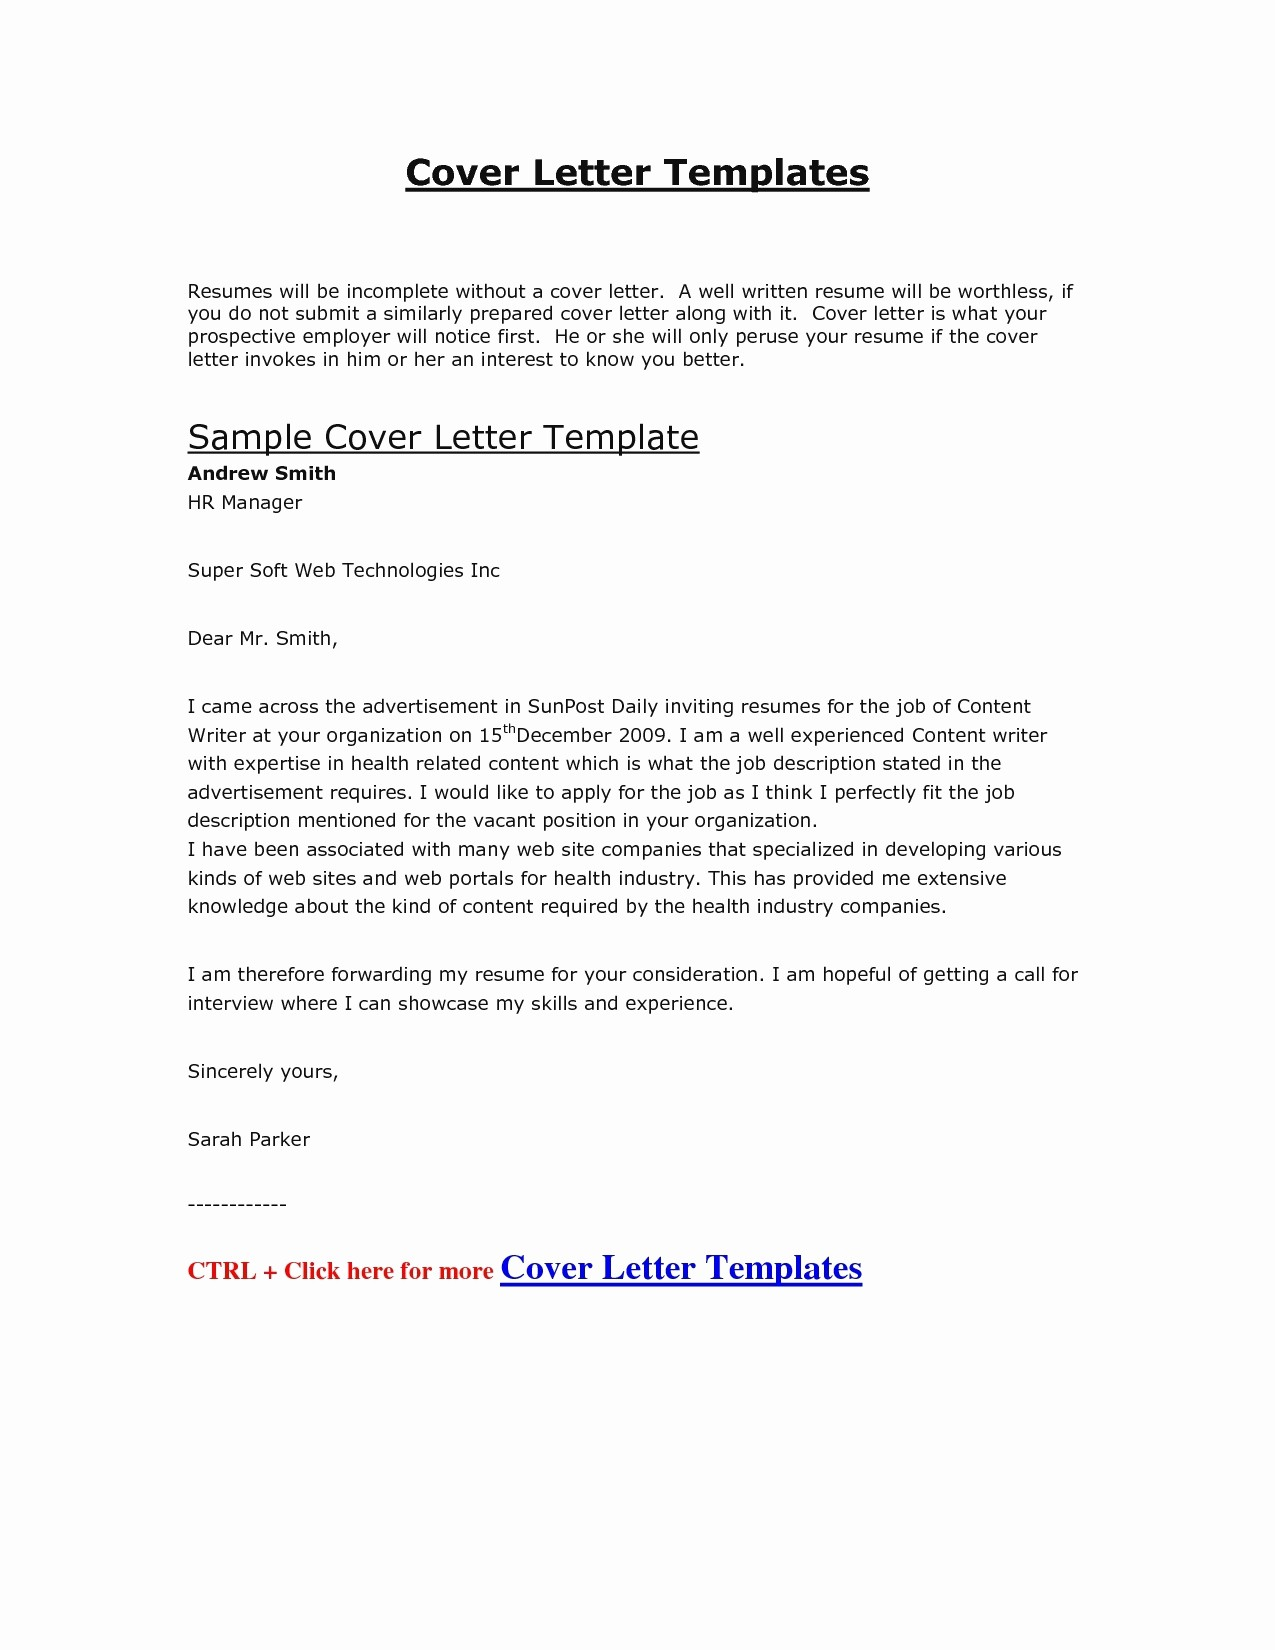 Cover Letter to A Resume Beautiful Resume Cover Letter Template 2017